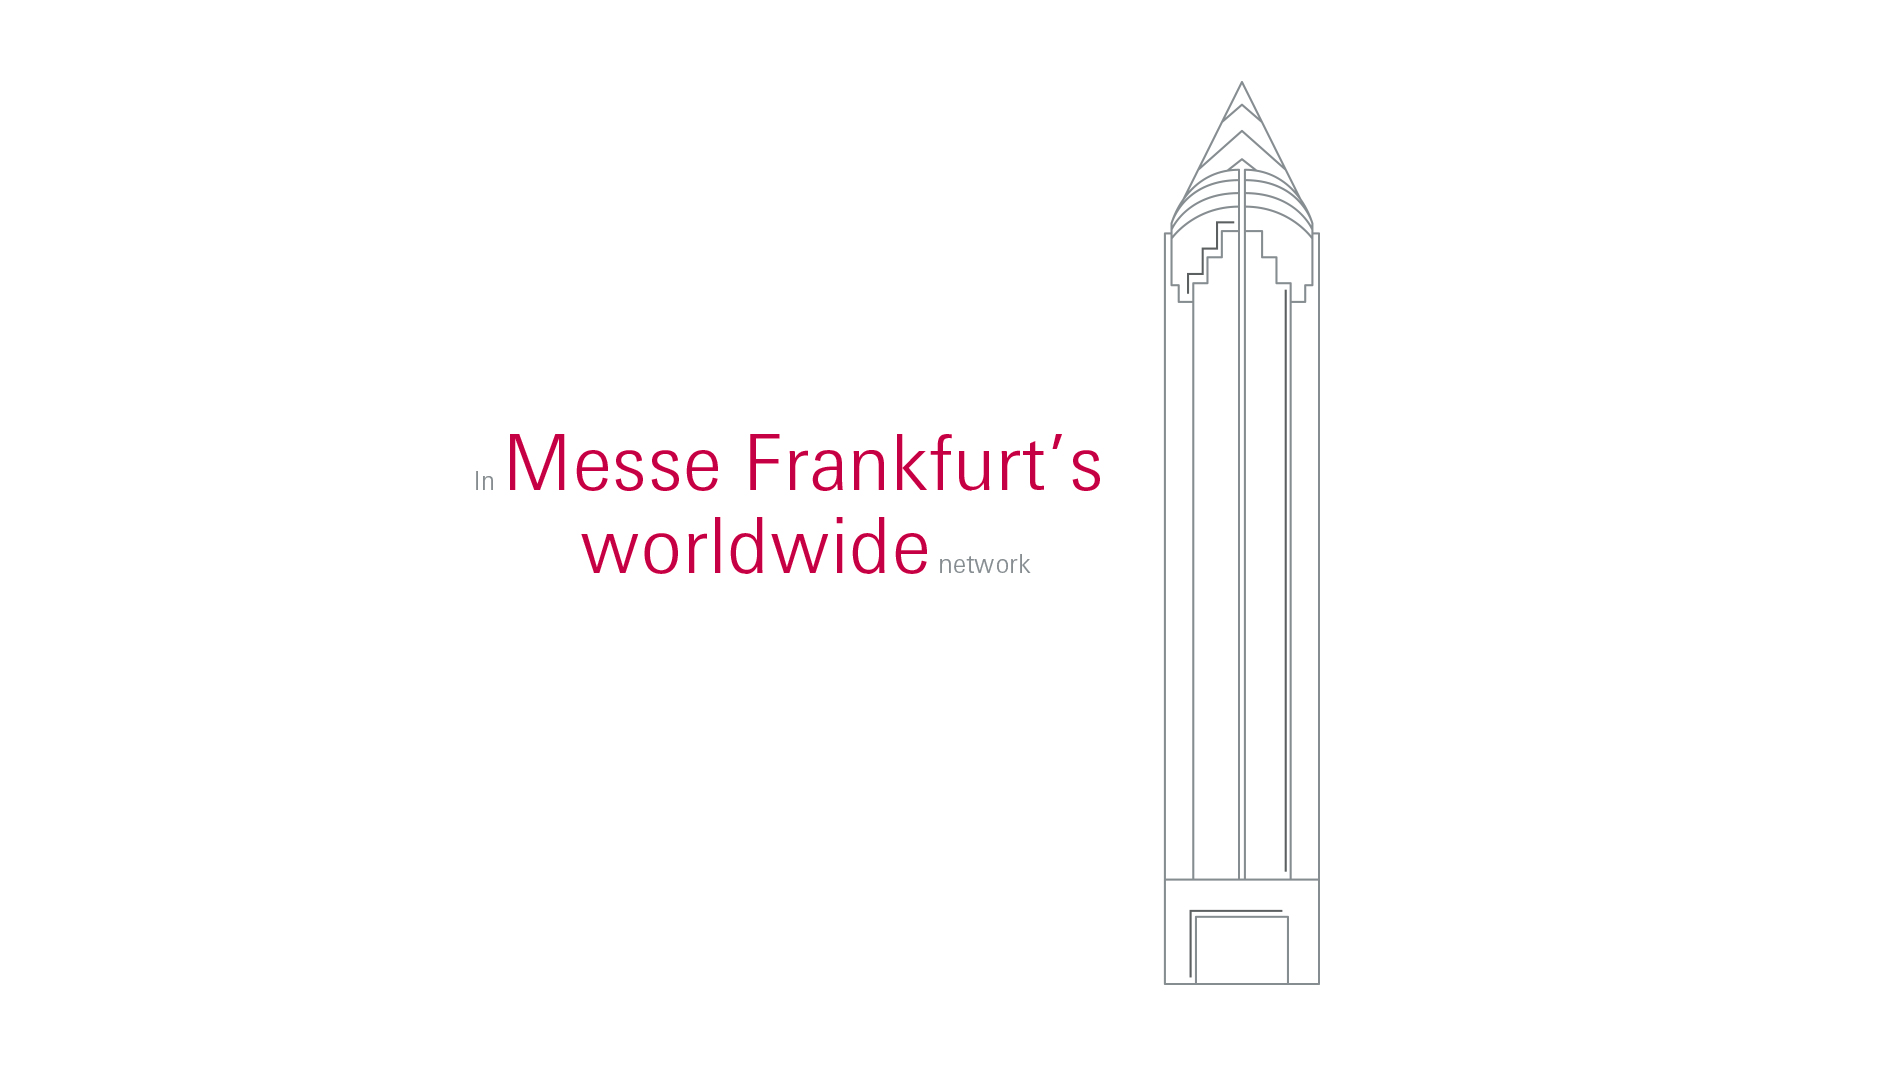 In Messe Frankfurt's worldwide network